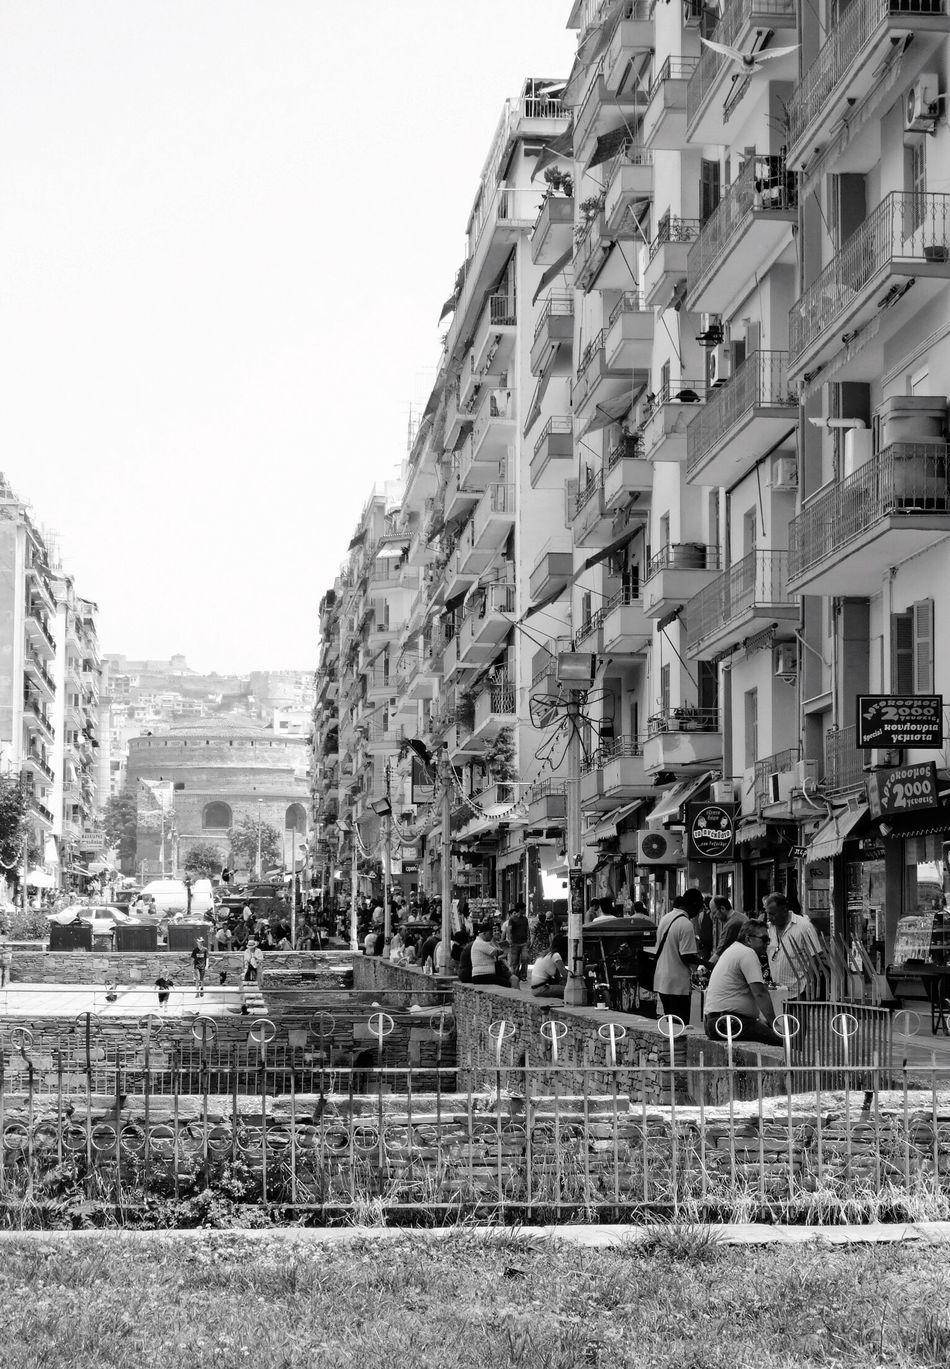 Greece Architecture_collection Building Architecture Blackandwhite Black And White Black & White City Buildings Black&white Black And White Photography Blackandwhite Photography B&w Photography City Life People People Watching People Photography Peoplephotography Thessaloniki Thessaloniki Greece Old Buildings Monochrome